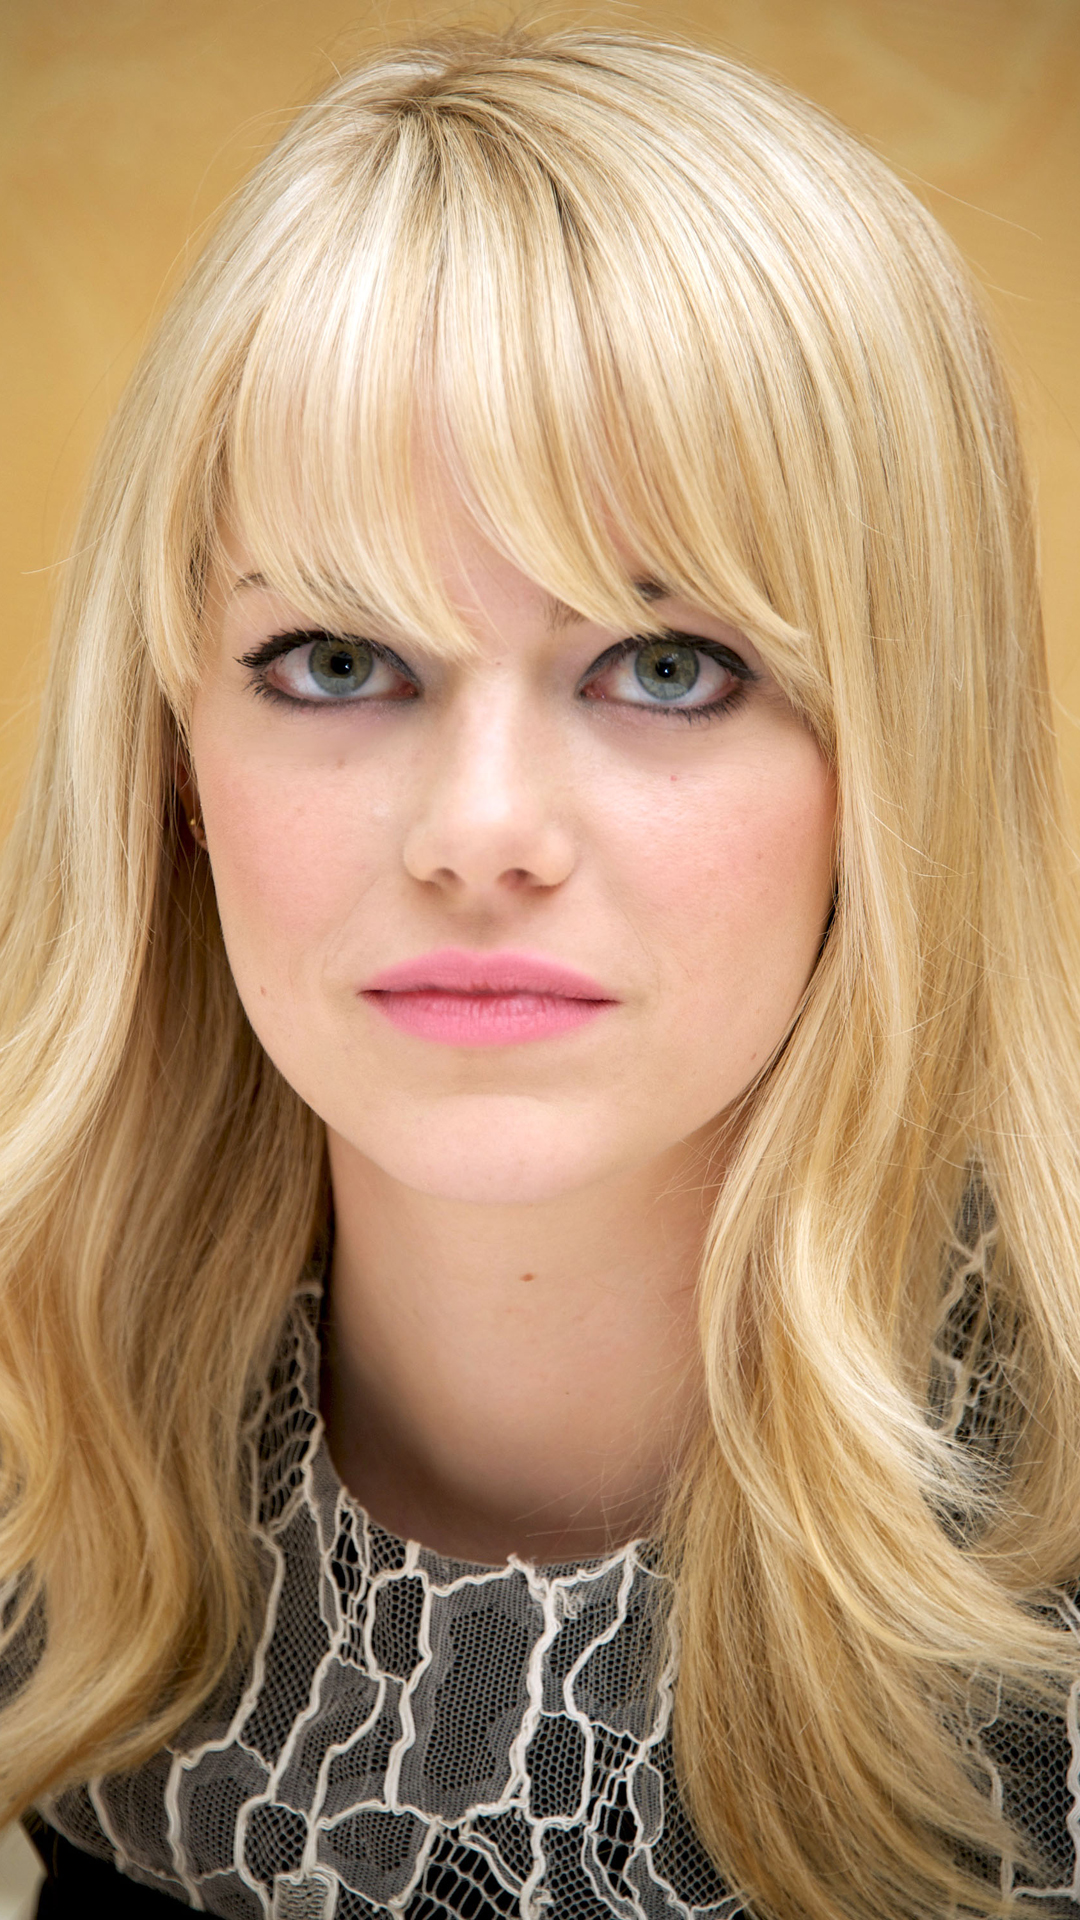 Emma Stone Htc One Wallpaper 1080x1920 Best Htc One Wallpapers